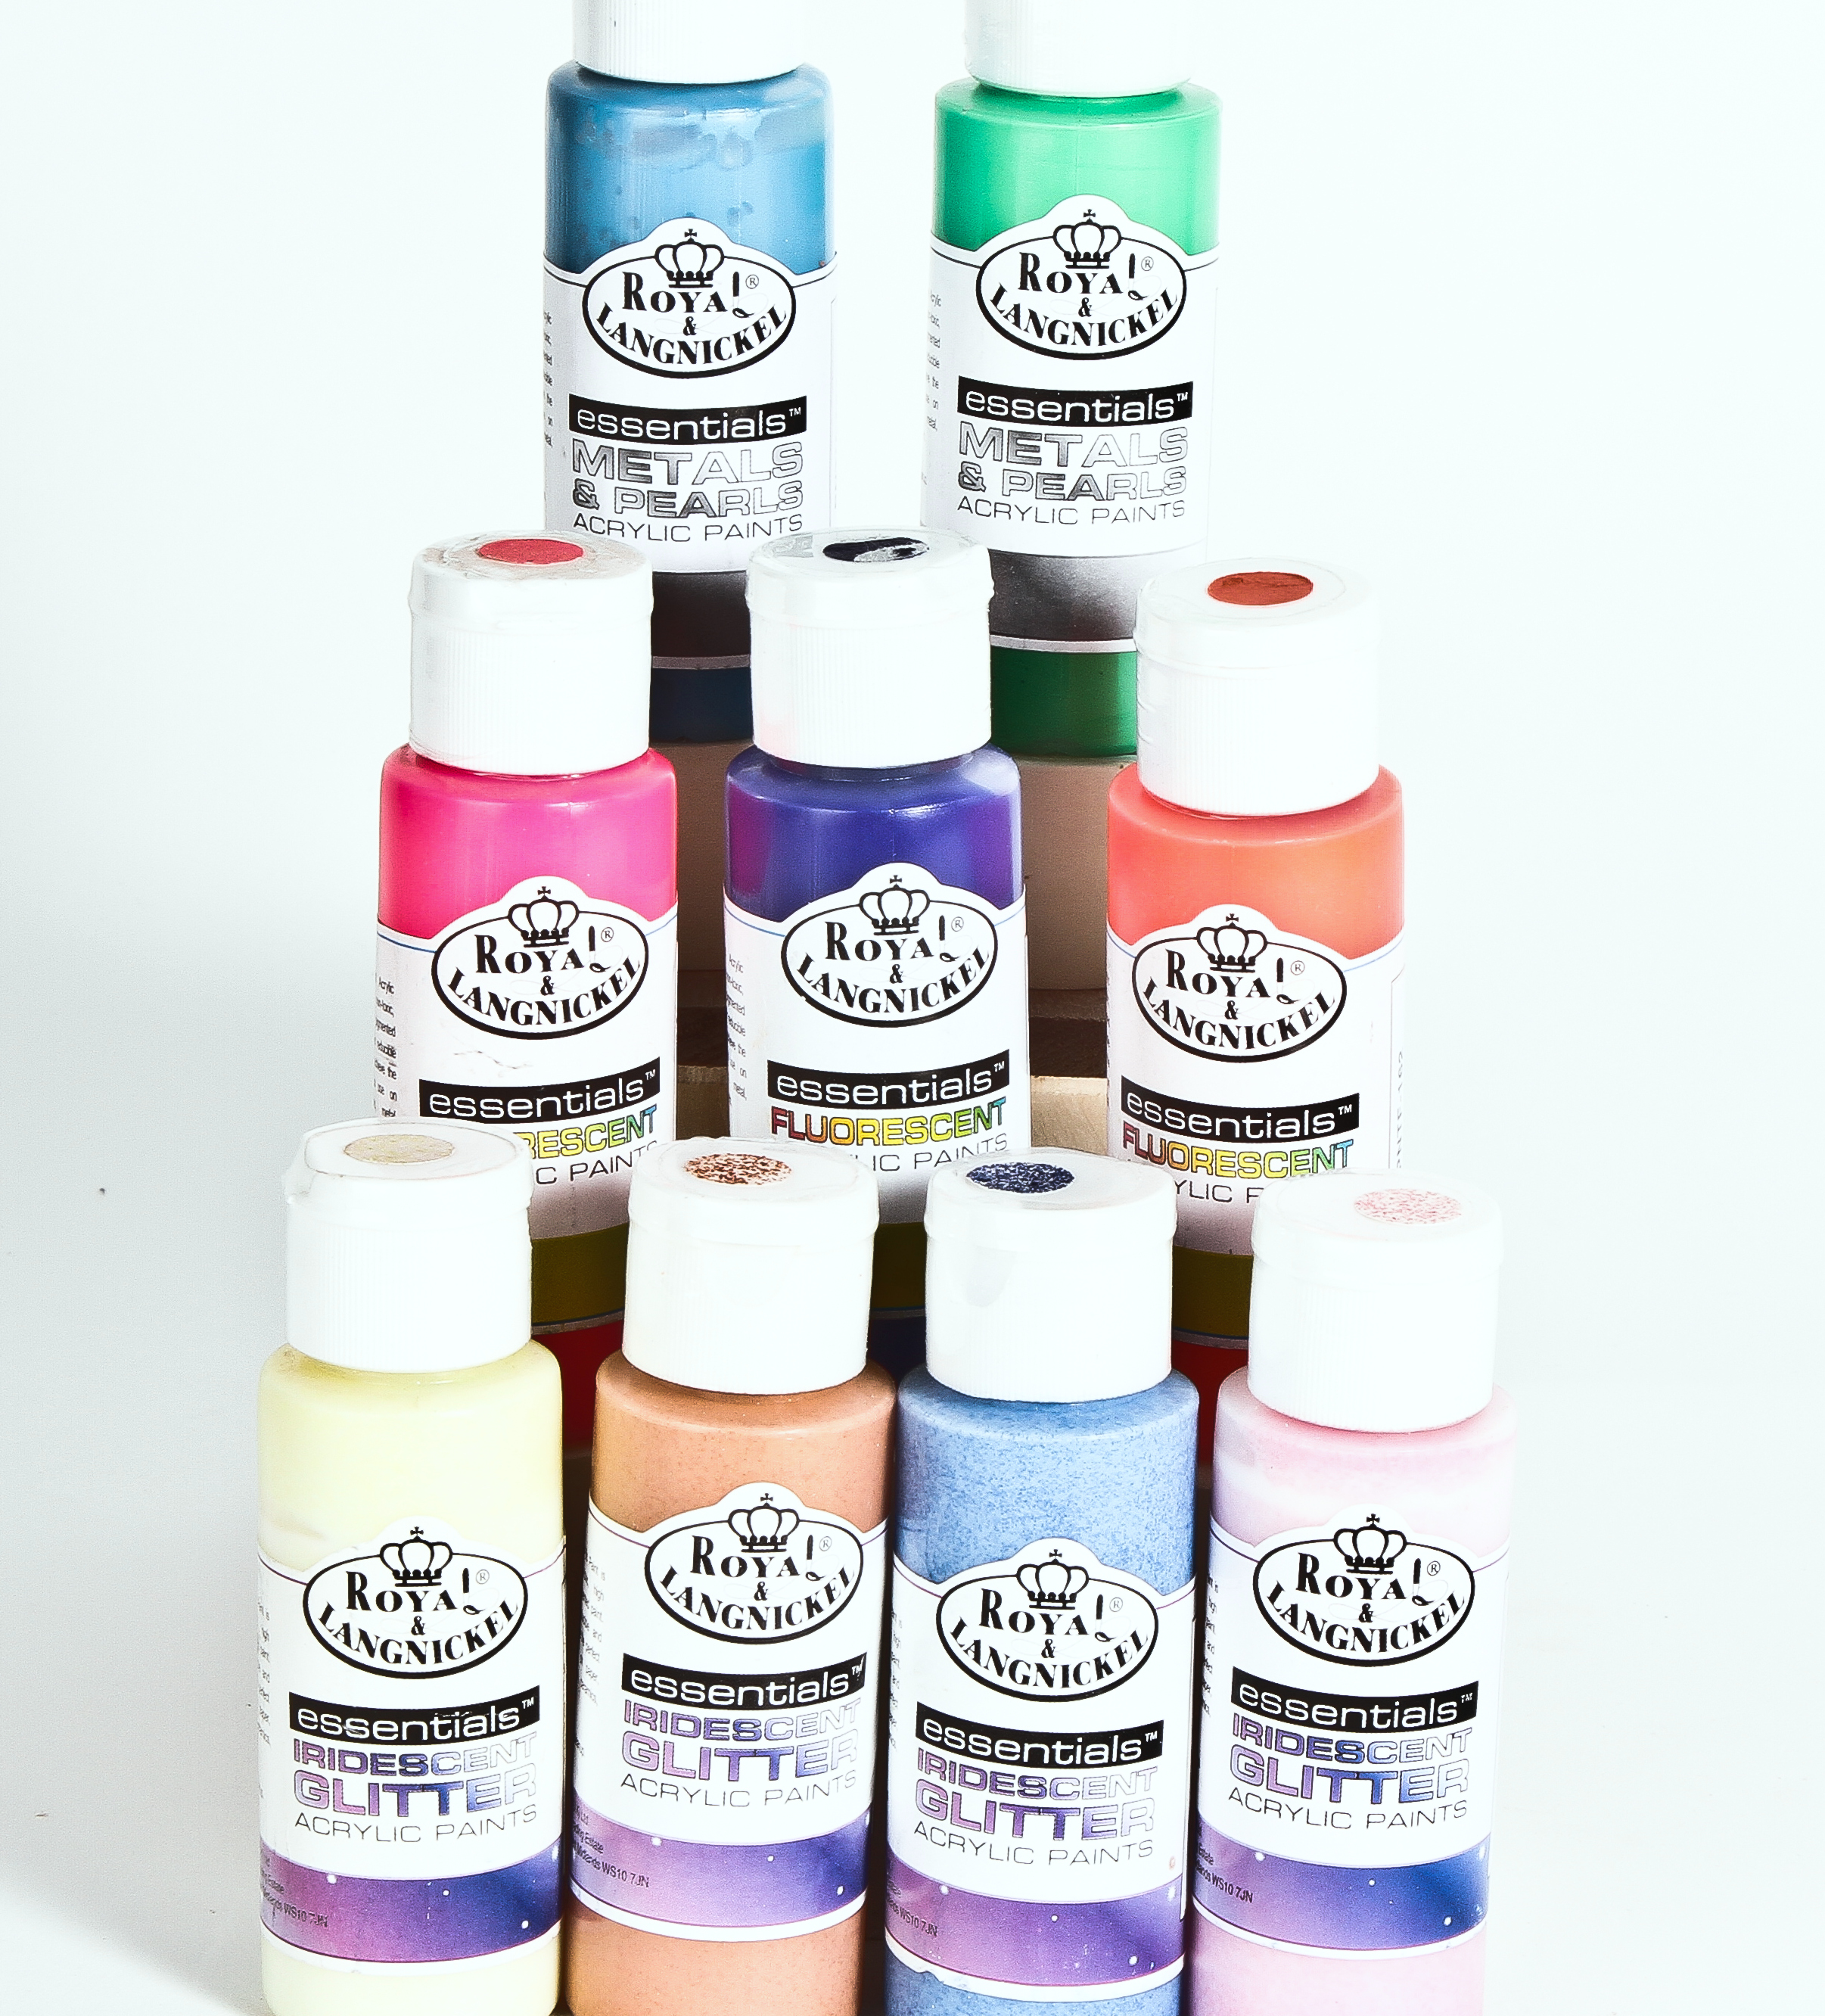 Discounted Paints and Finishes